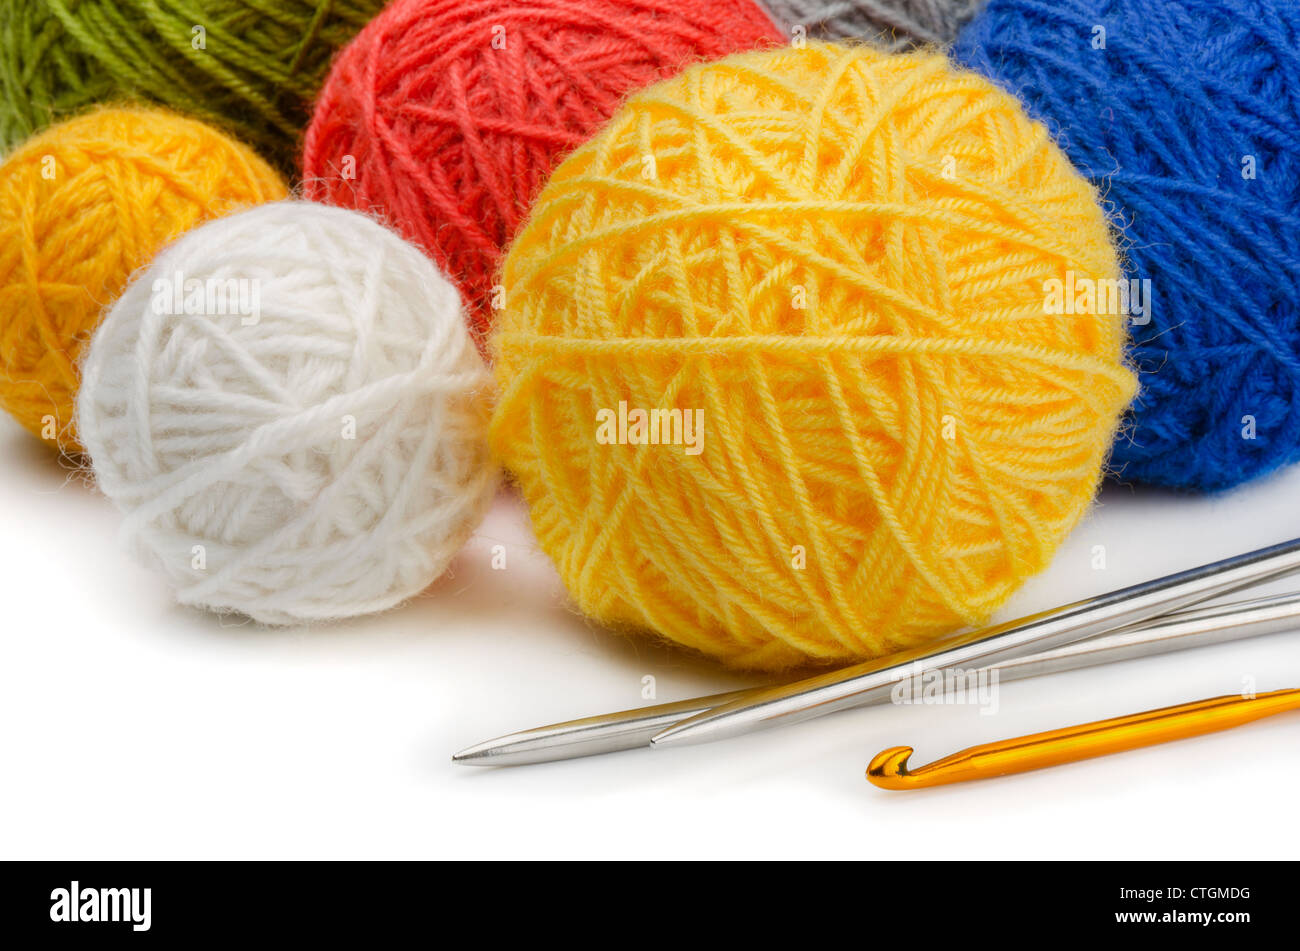 Color wool skeins, knitting needles and crochet - Stock Image